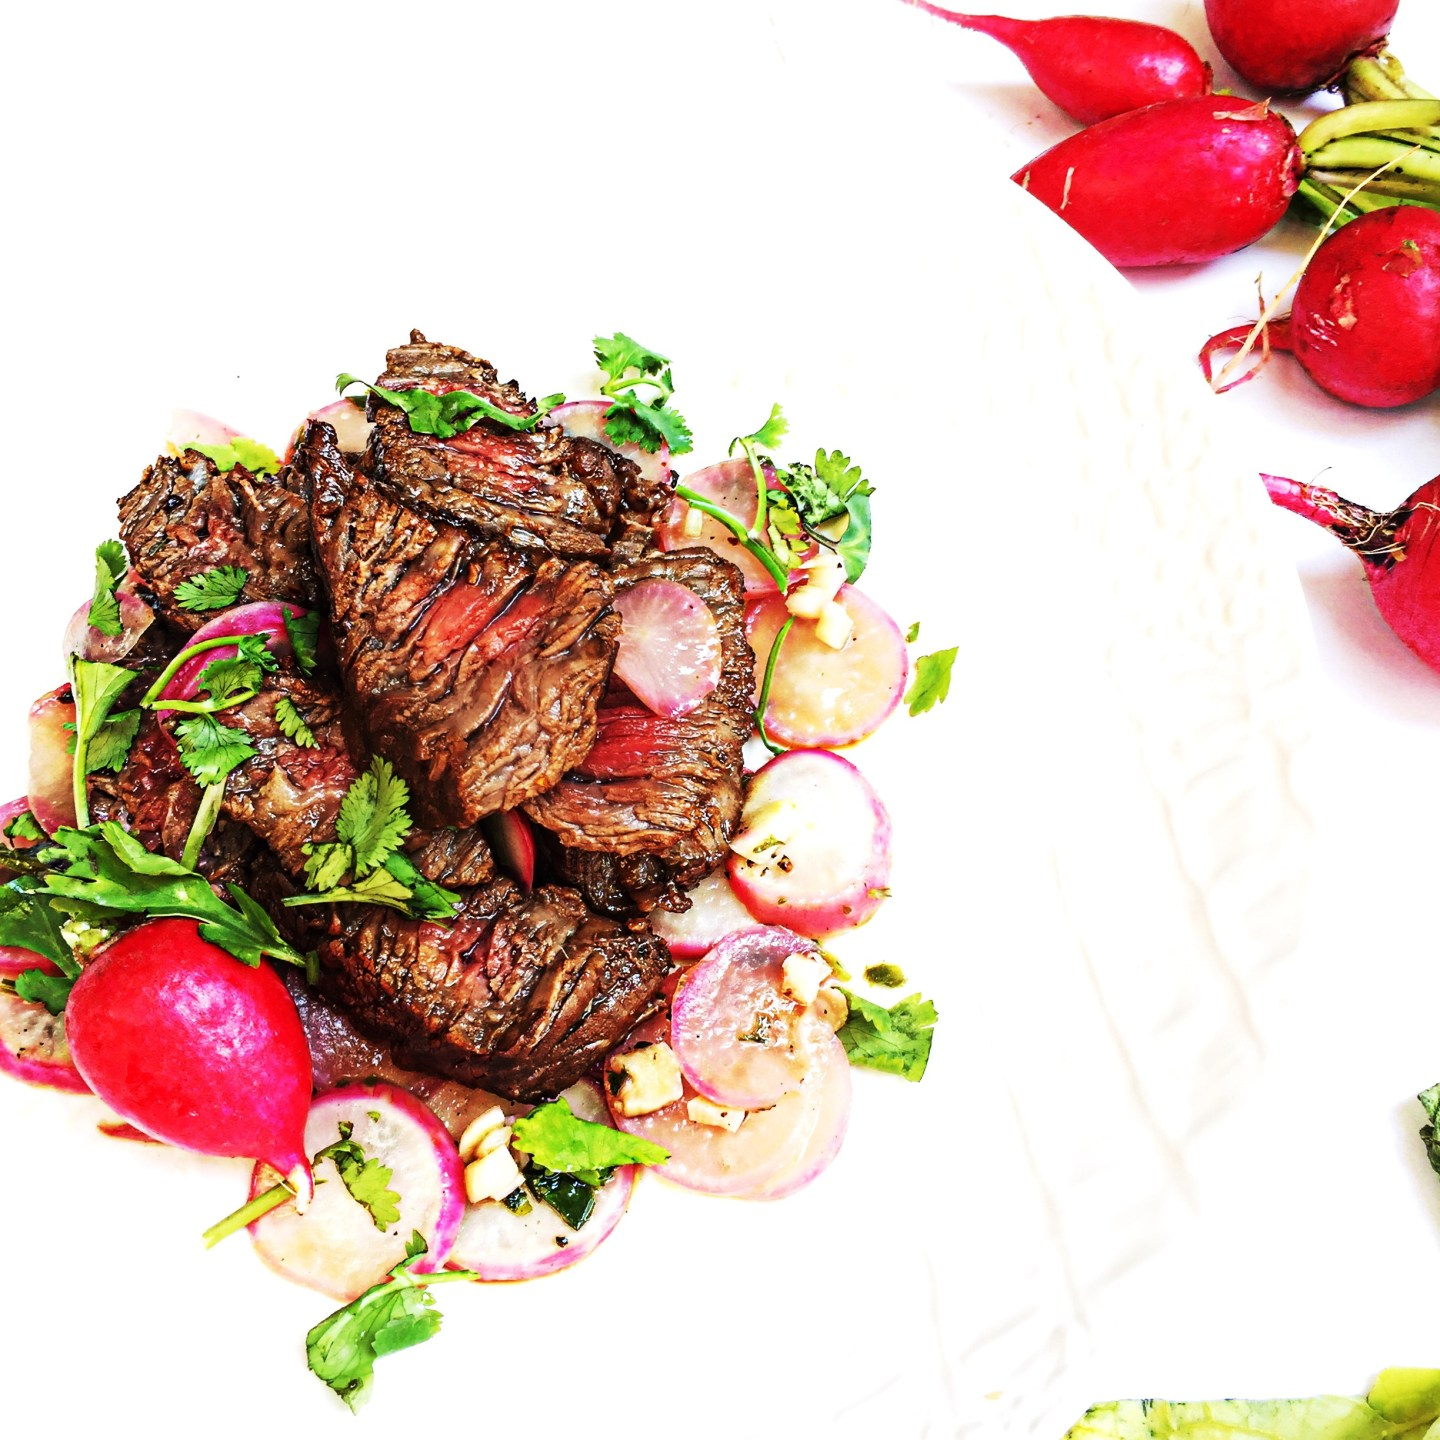 Marinated Steak over Grilled Radishes and Cilantro